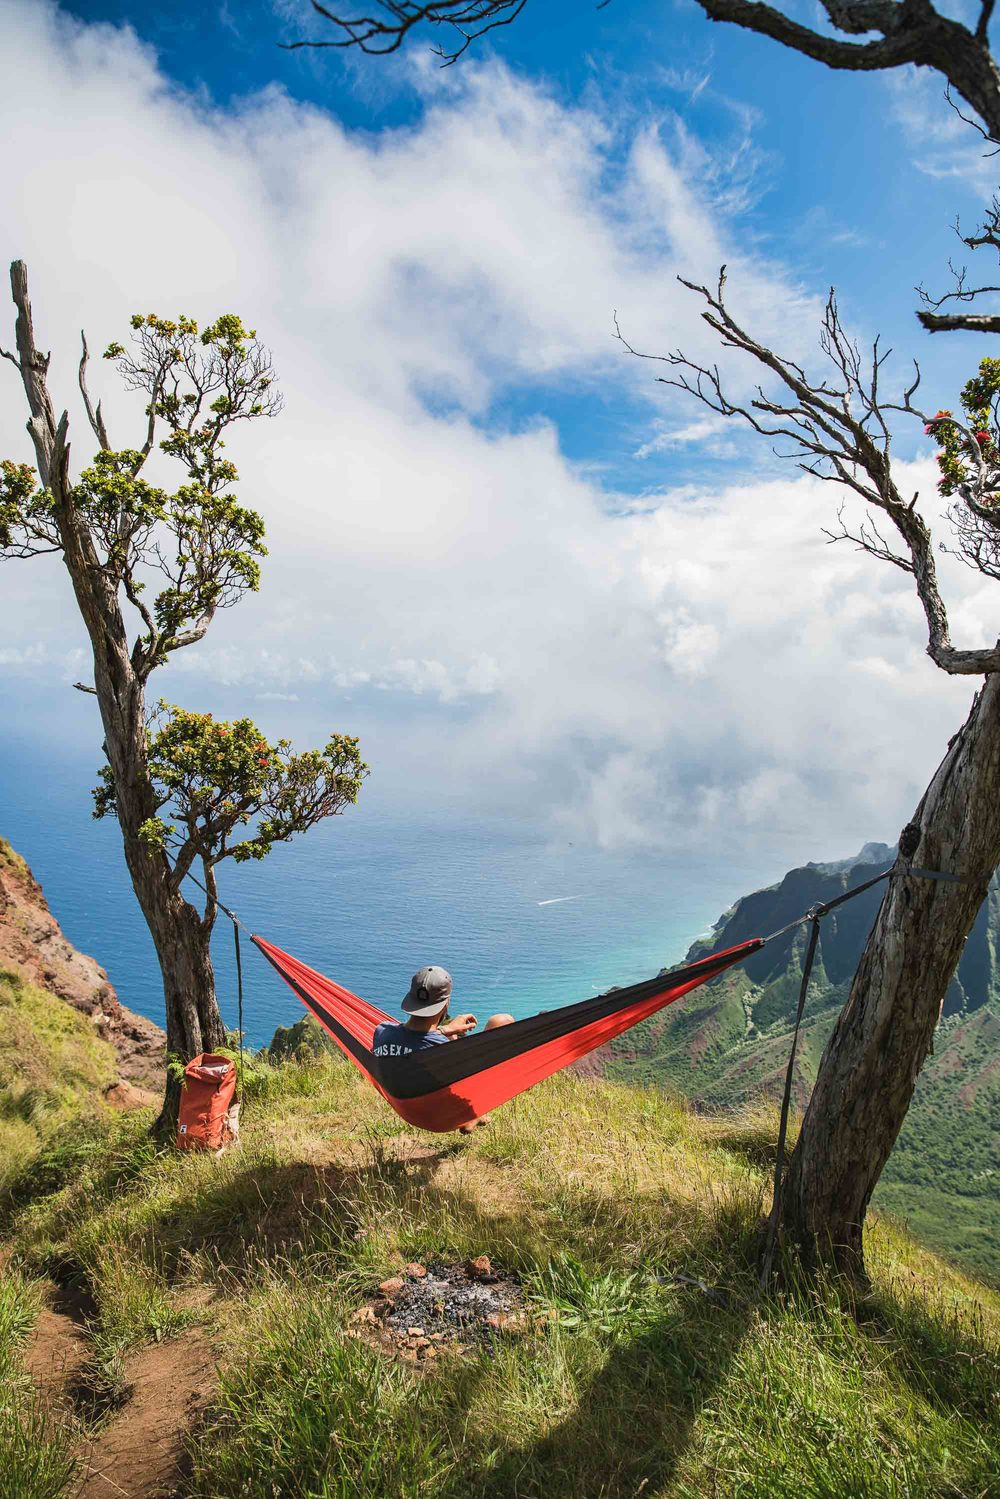 bryce-johnson-kalalau-ridge-kauai-hiking-hammock-palmwood-aloha-exchange-17.jpg